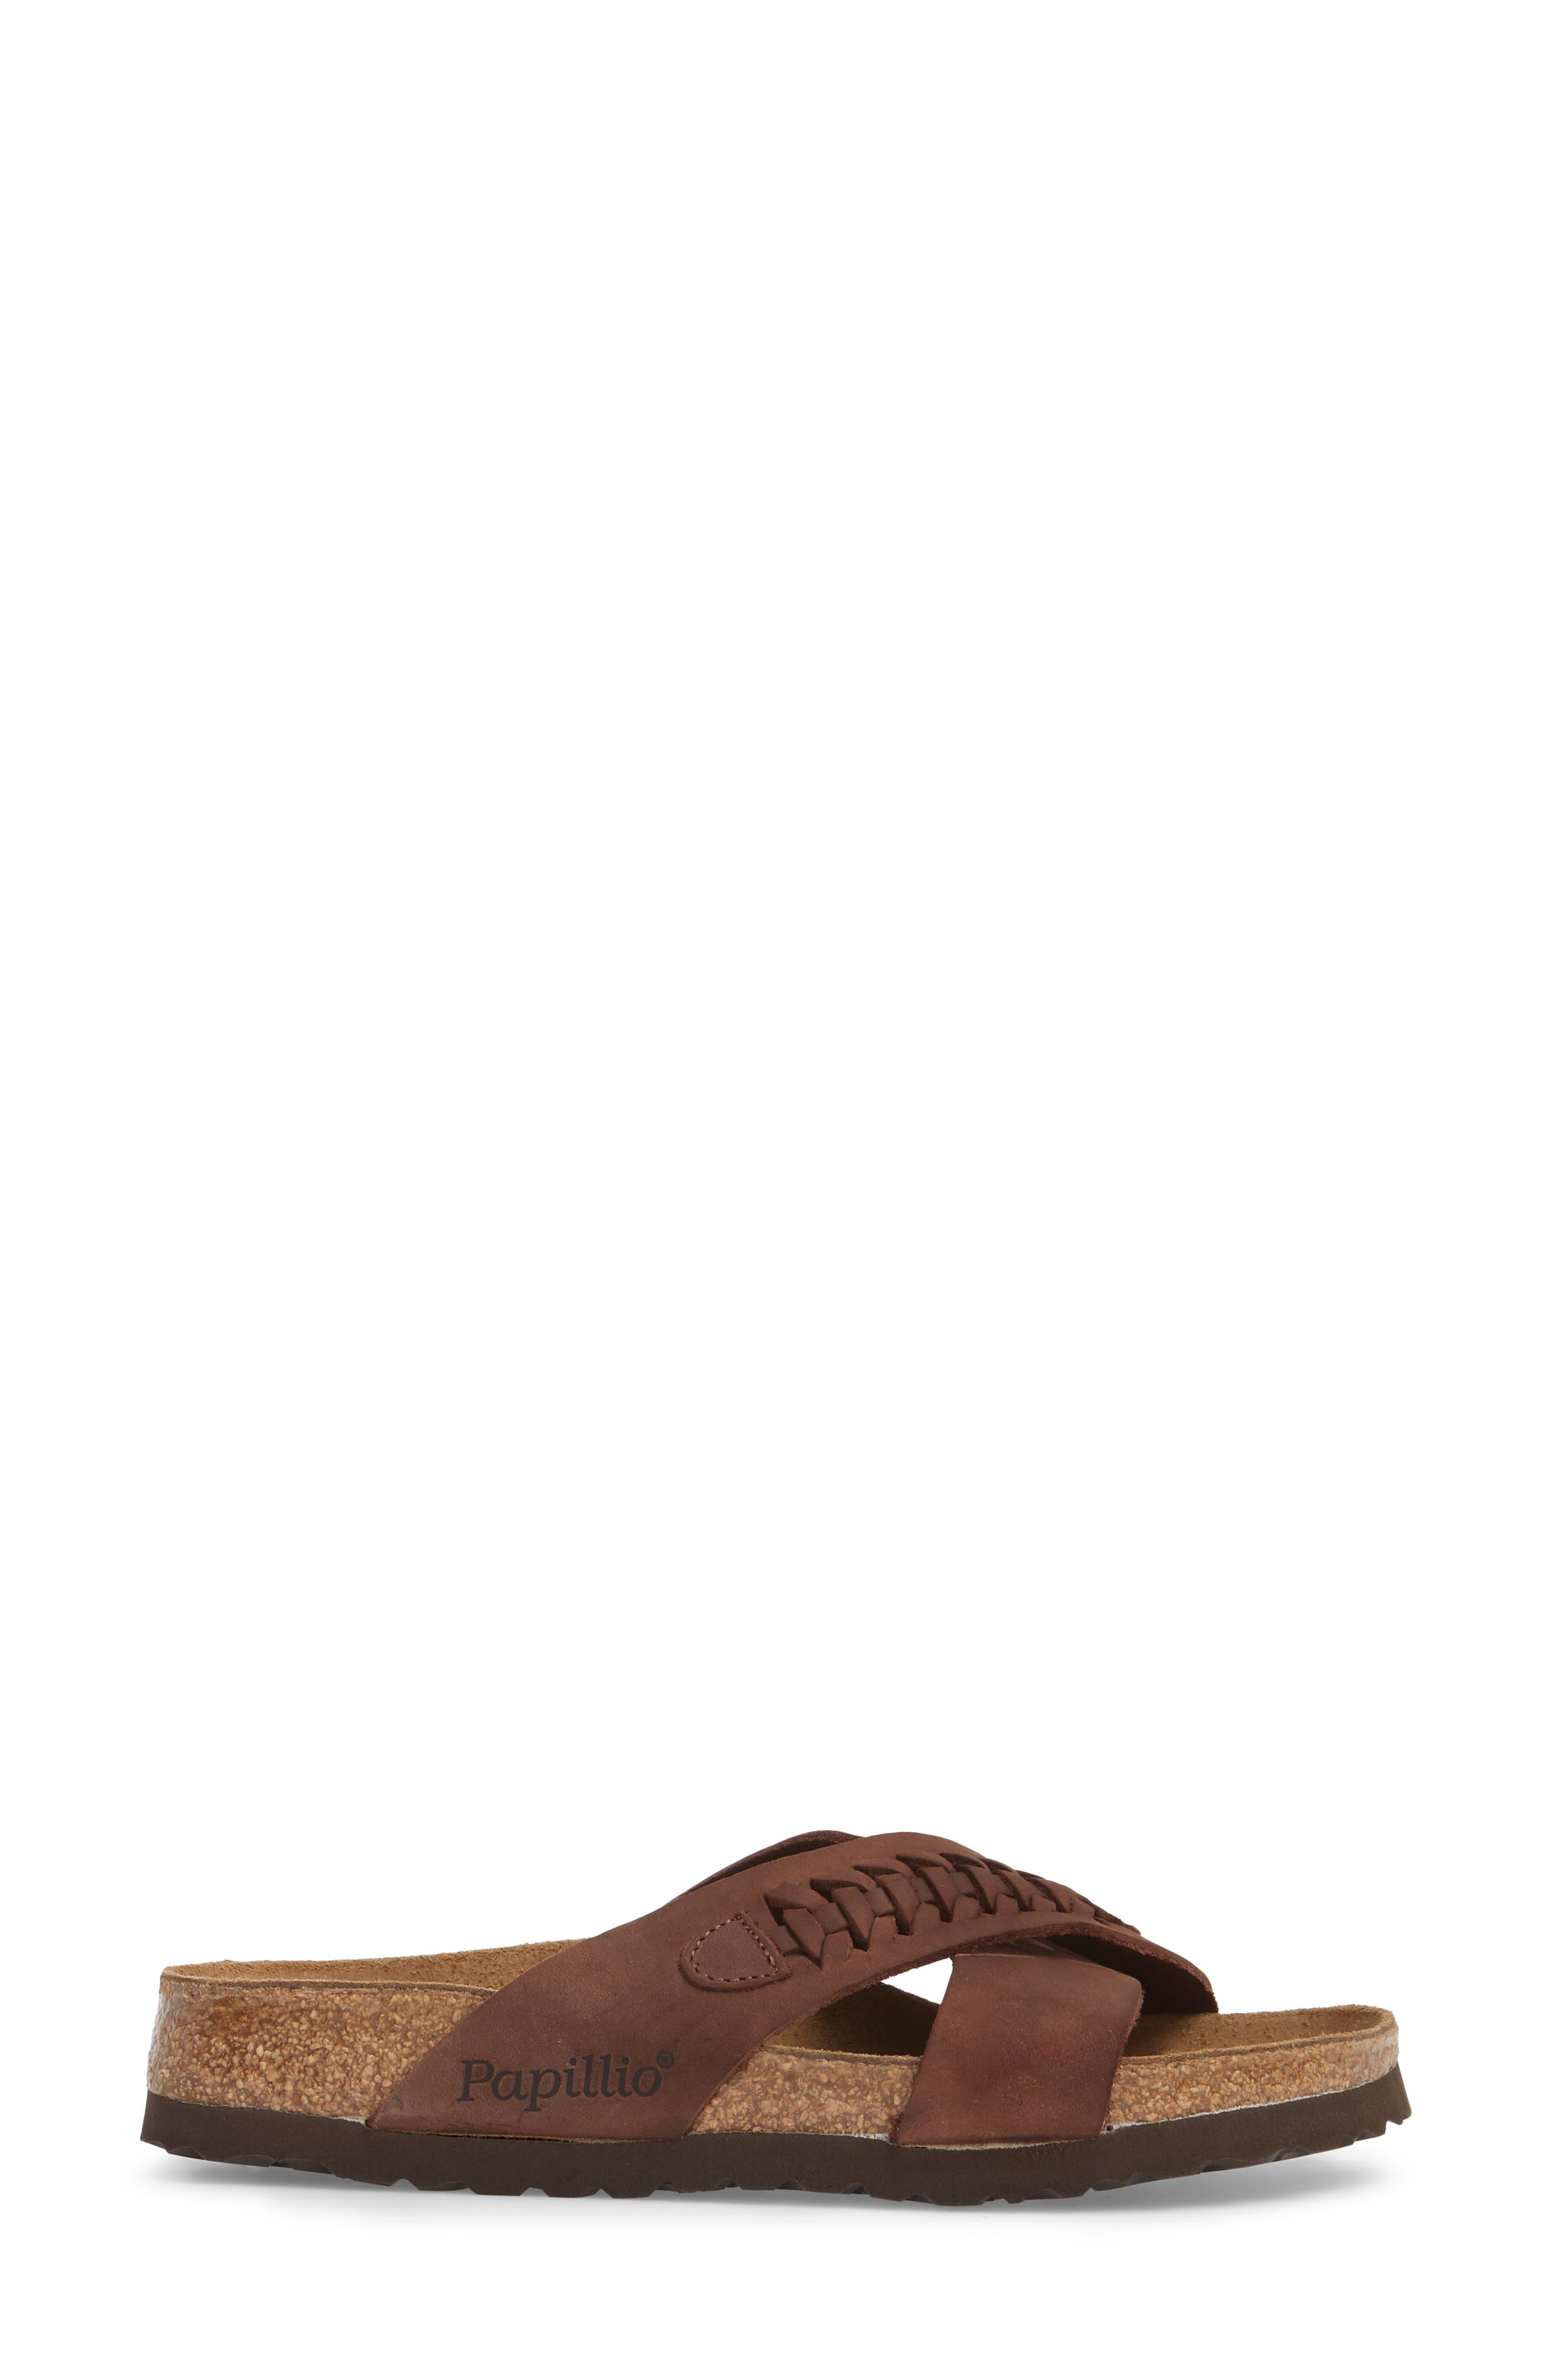 Alternate Image 3  - Papillio by Birkenstock Daytona Slide Sandal (Women)